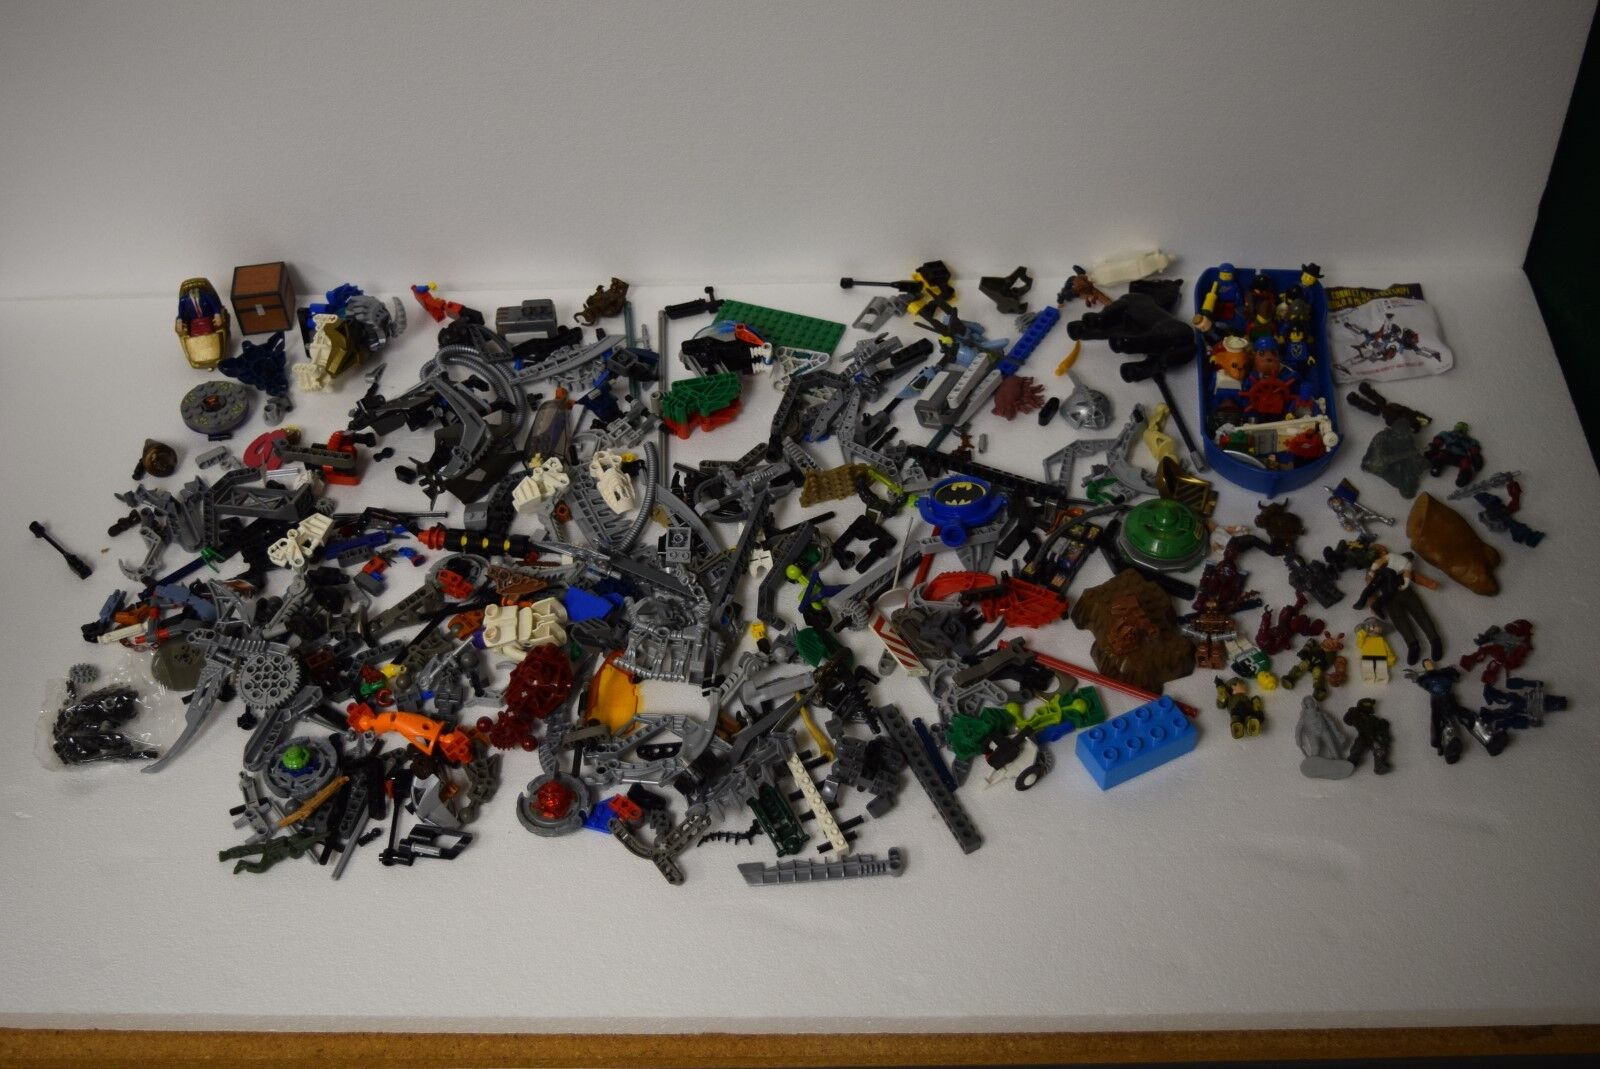 4 Pounds of Lego, Duplo, Smart Links, Figures and More